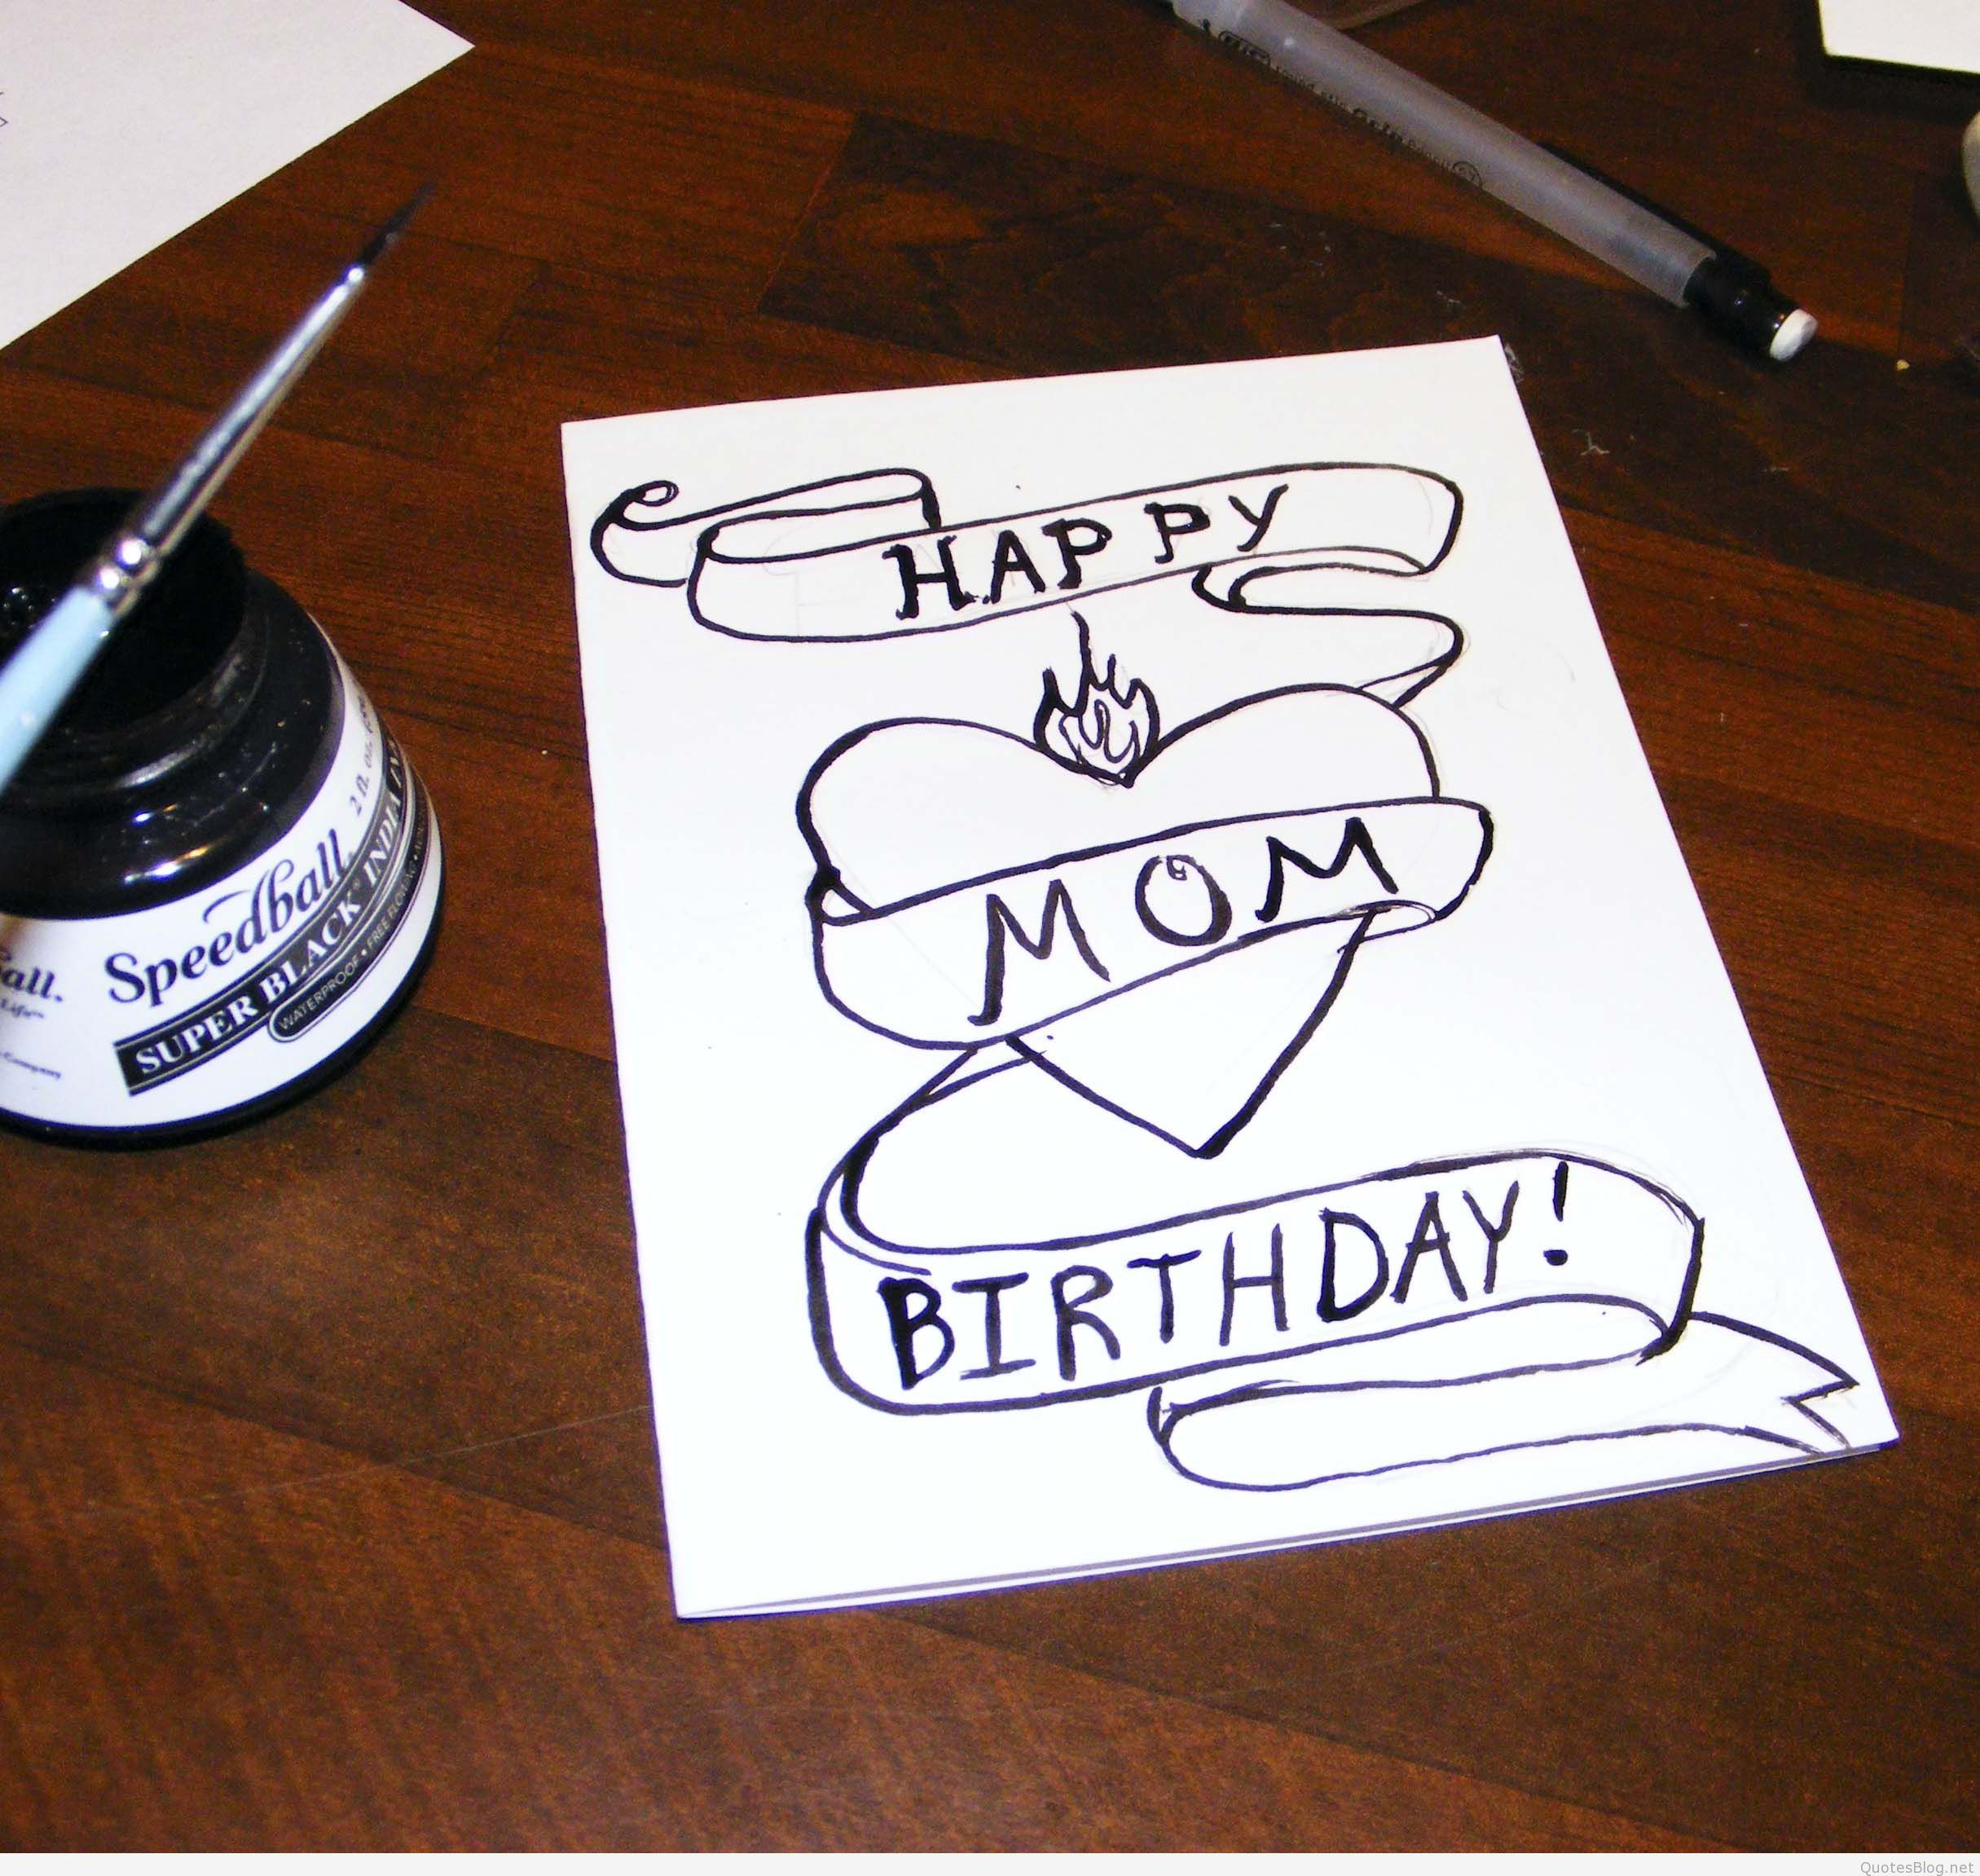 Happybirthdaymomquotespictureshdwallpapers quotes happy birthday messages for momsmothers kristyandbryce Images